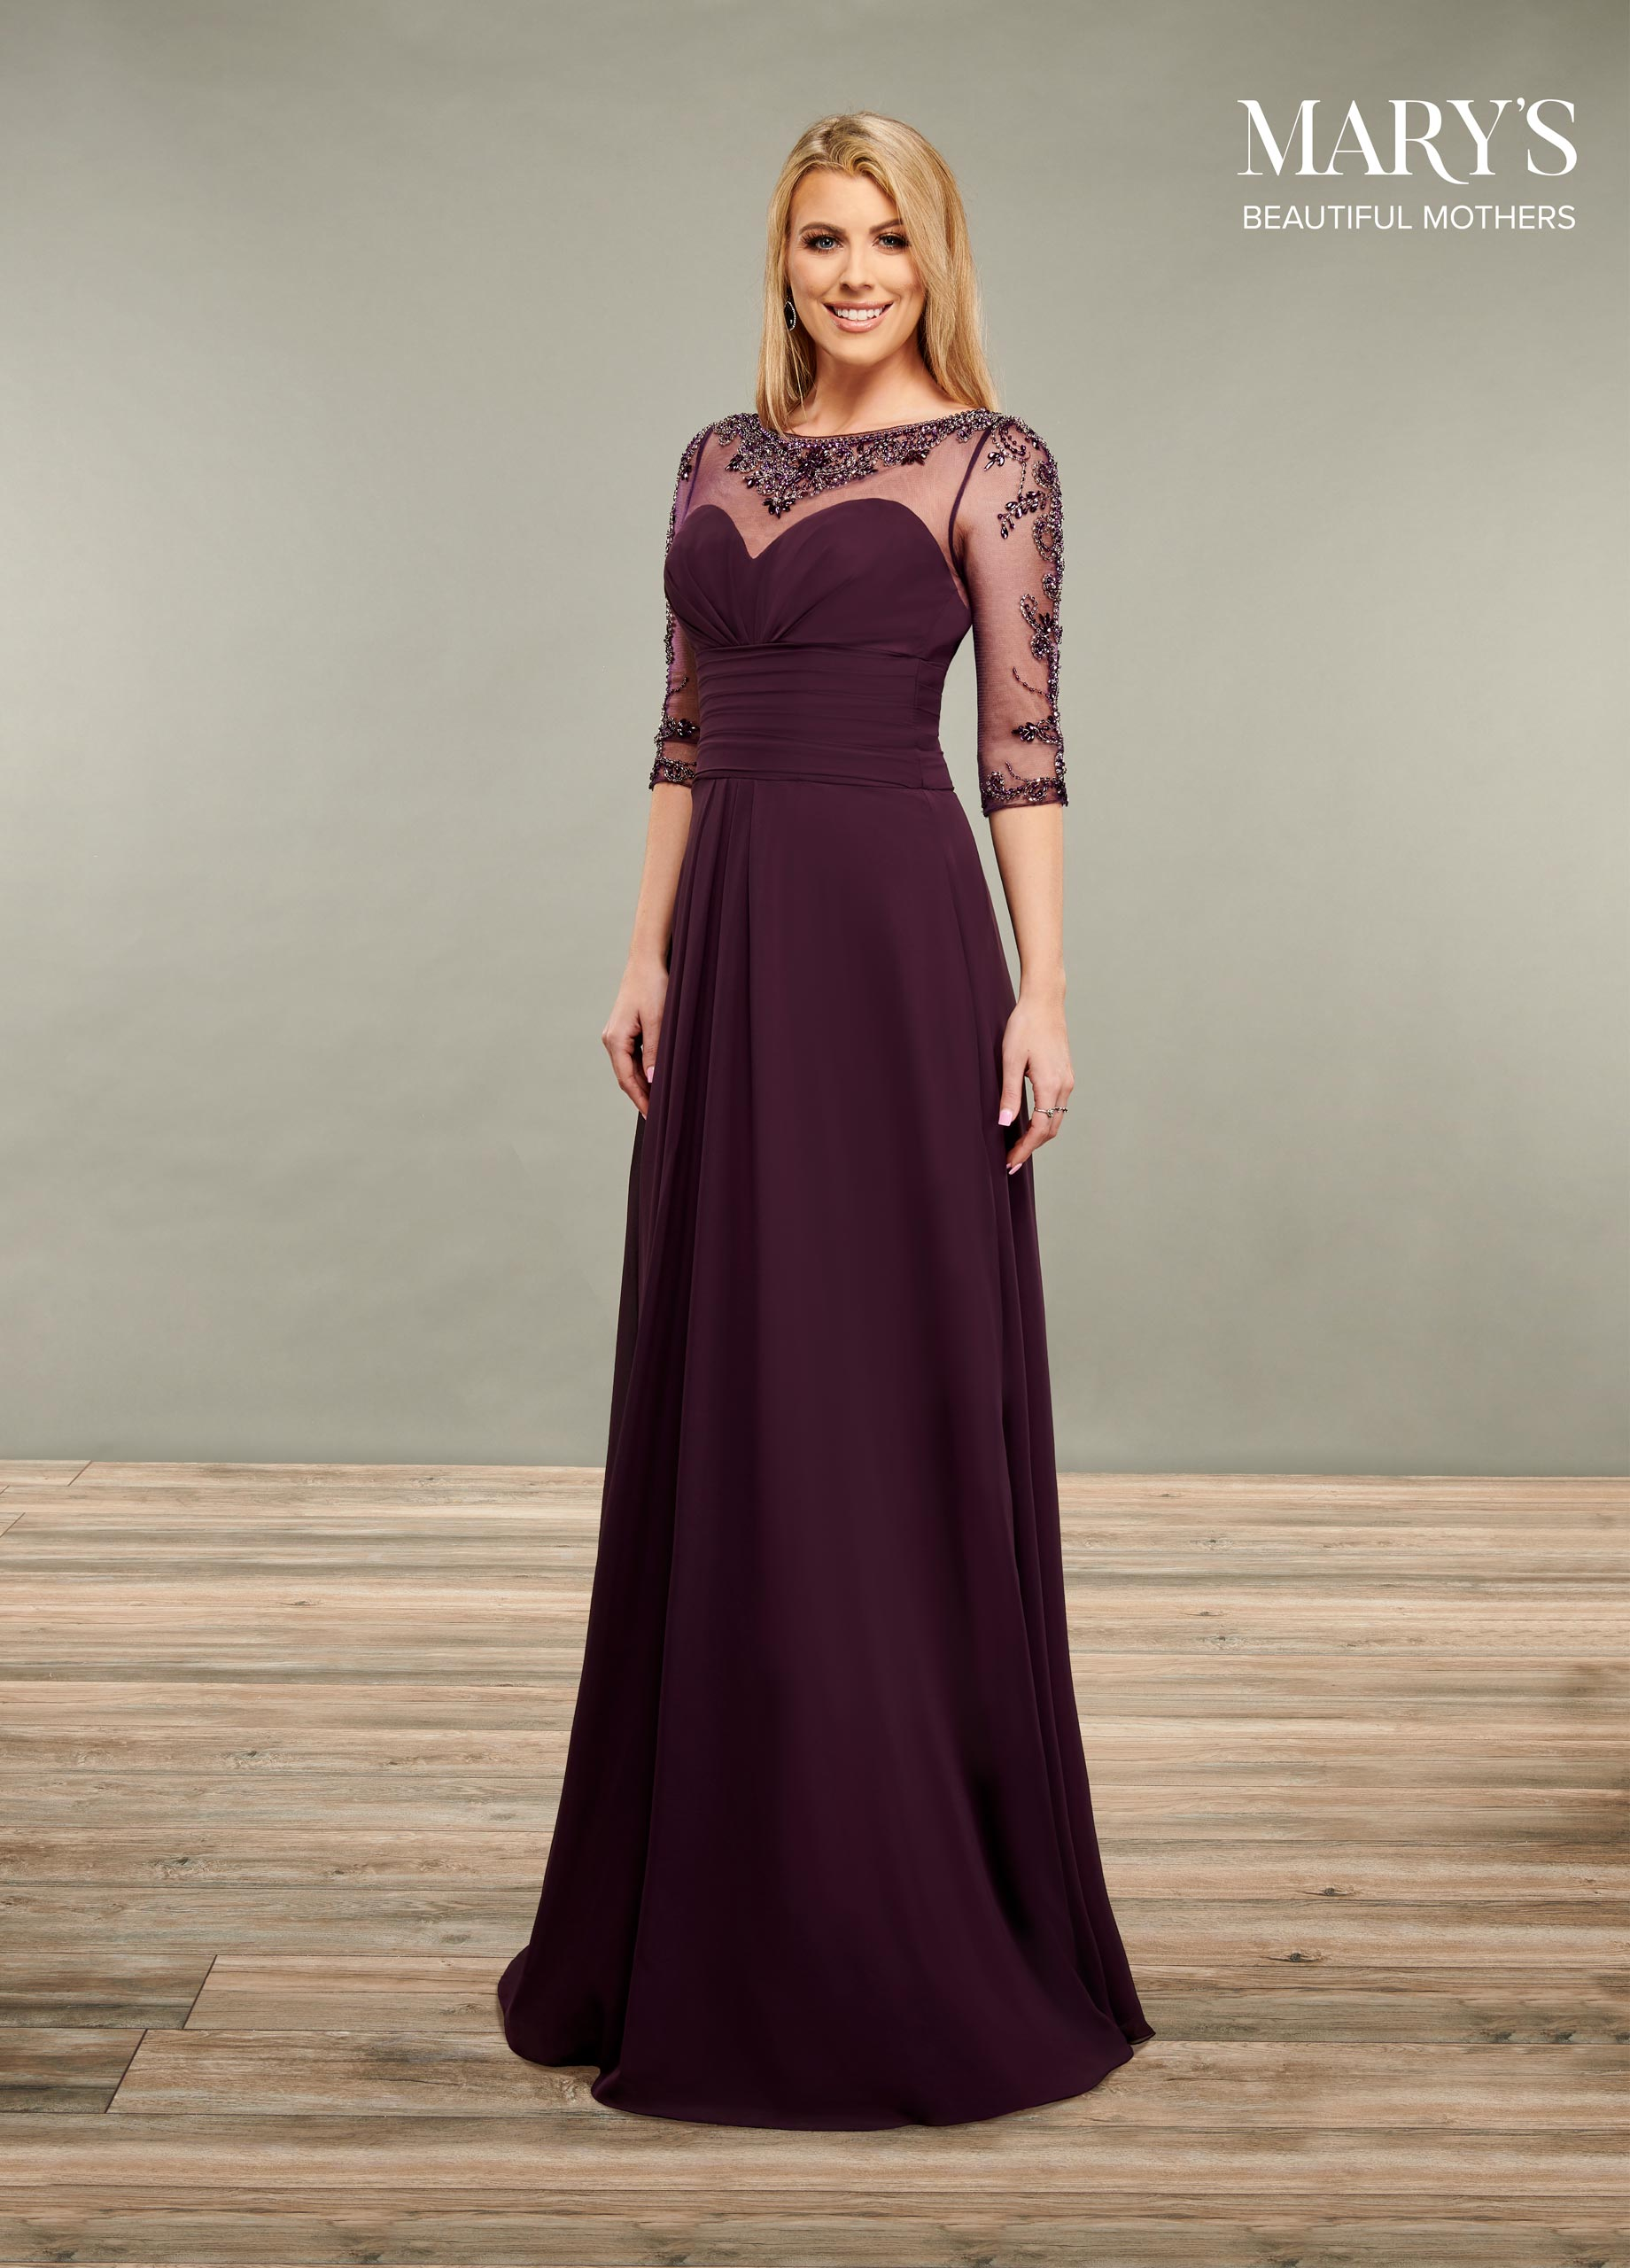 Mother Of The Bride Dresses | Beautiful Mothers | Style - MB8089